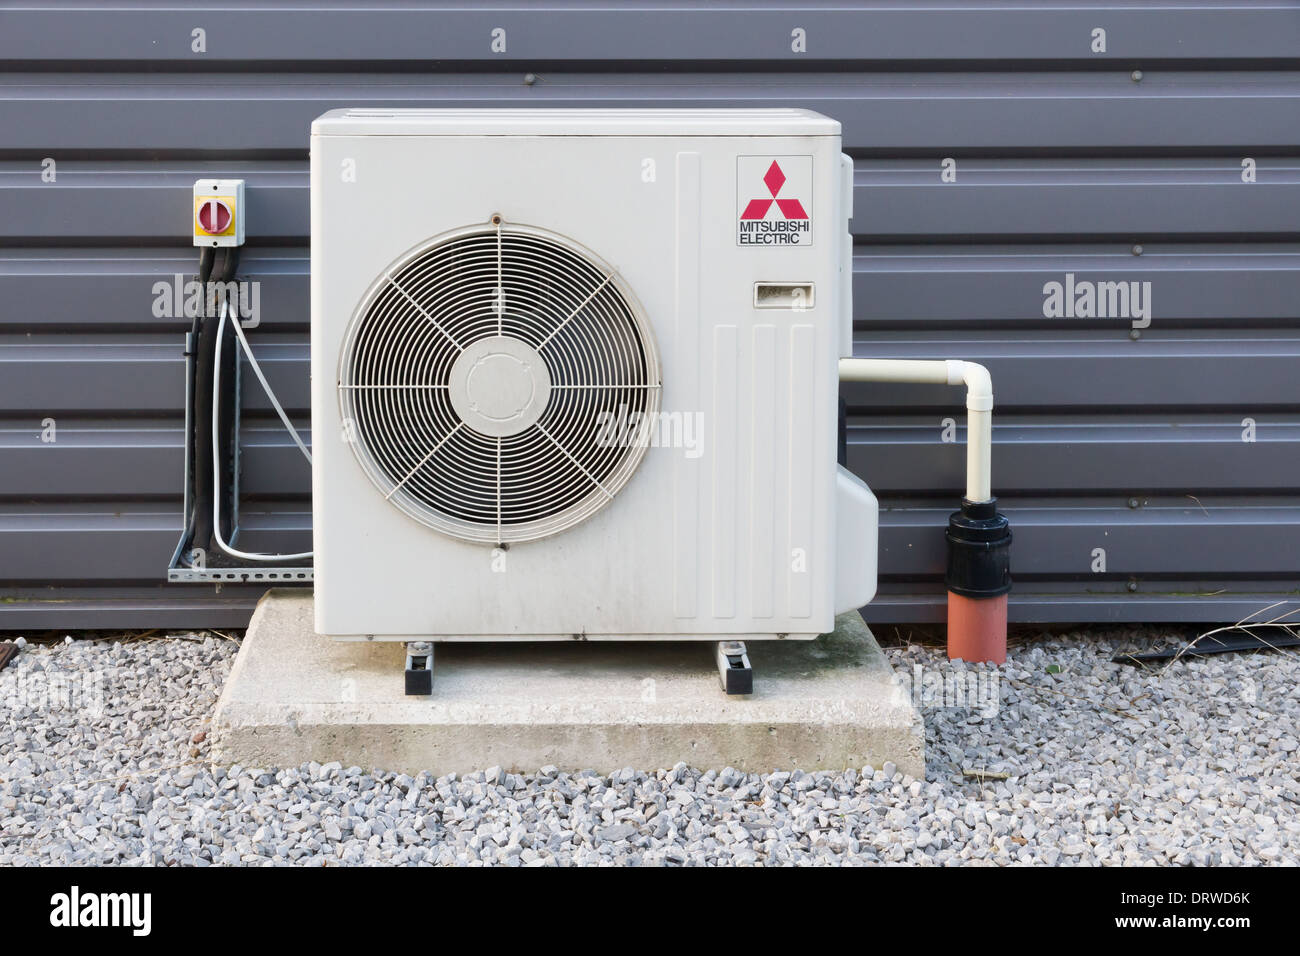 air conditioning unit stockfotos air conditioning unit. Black Bedroom Furniture Sets. Home Design Ideas